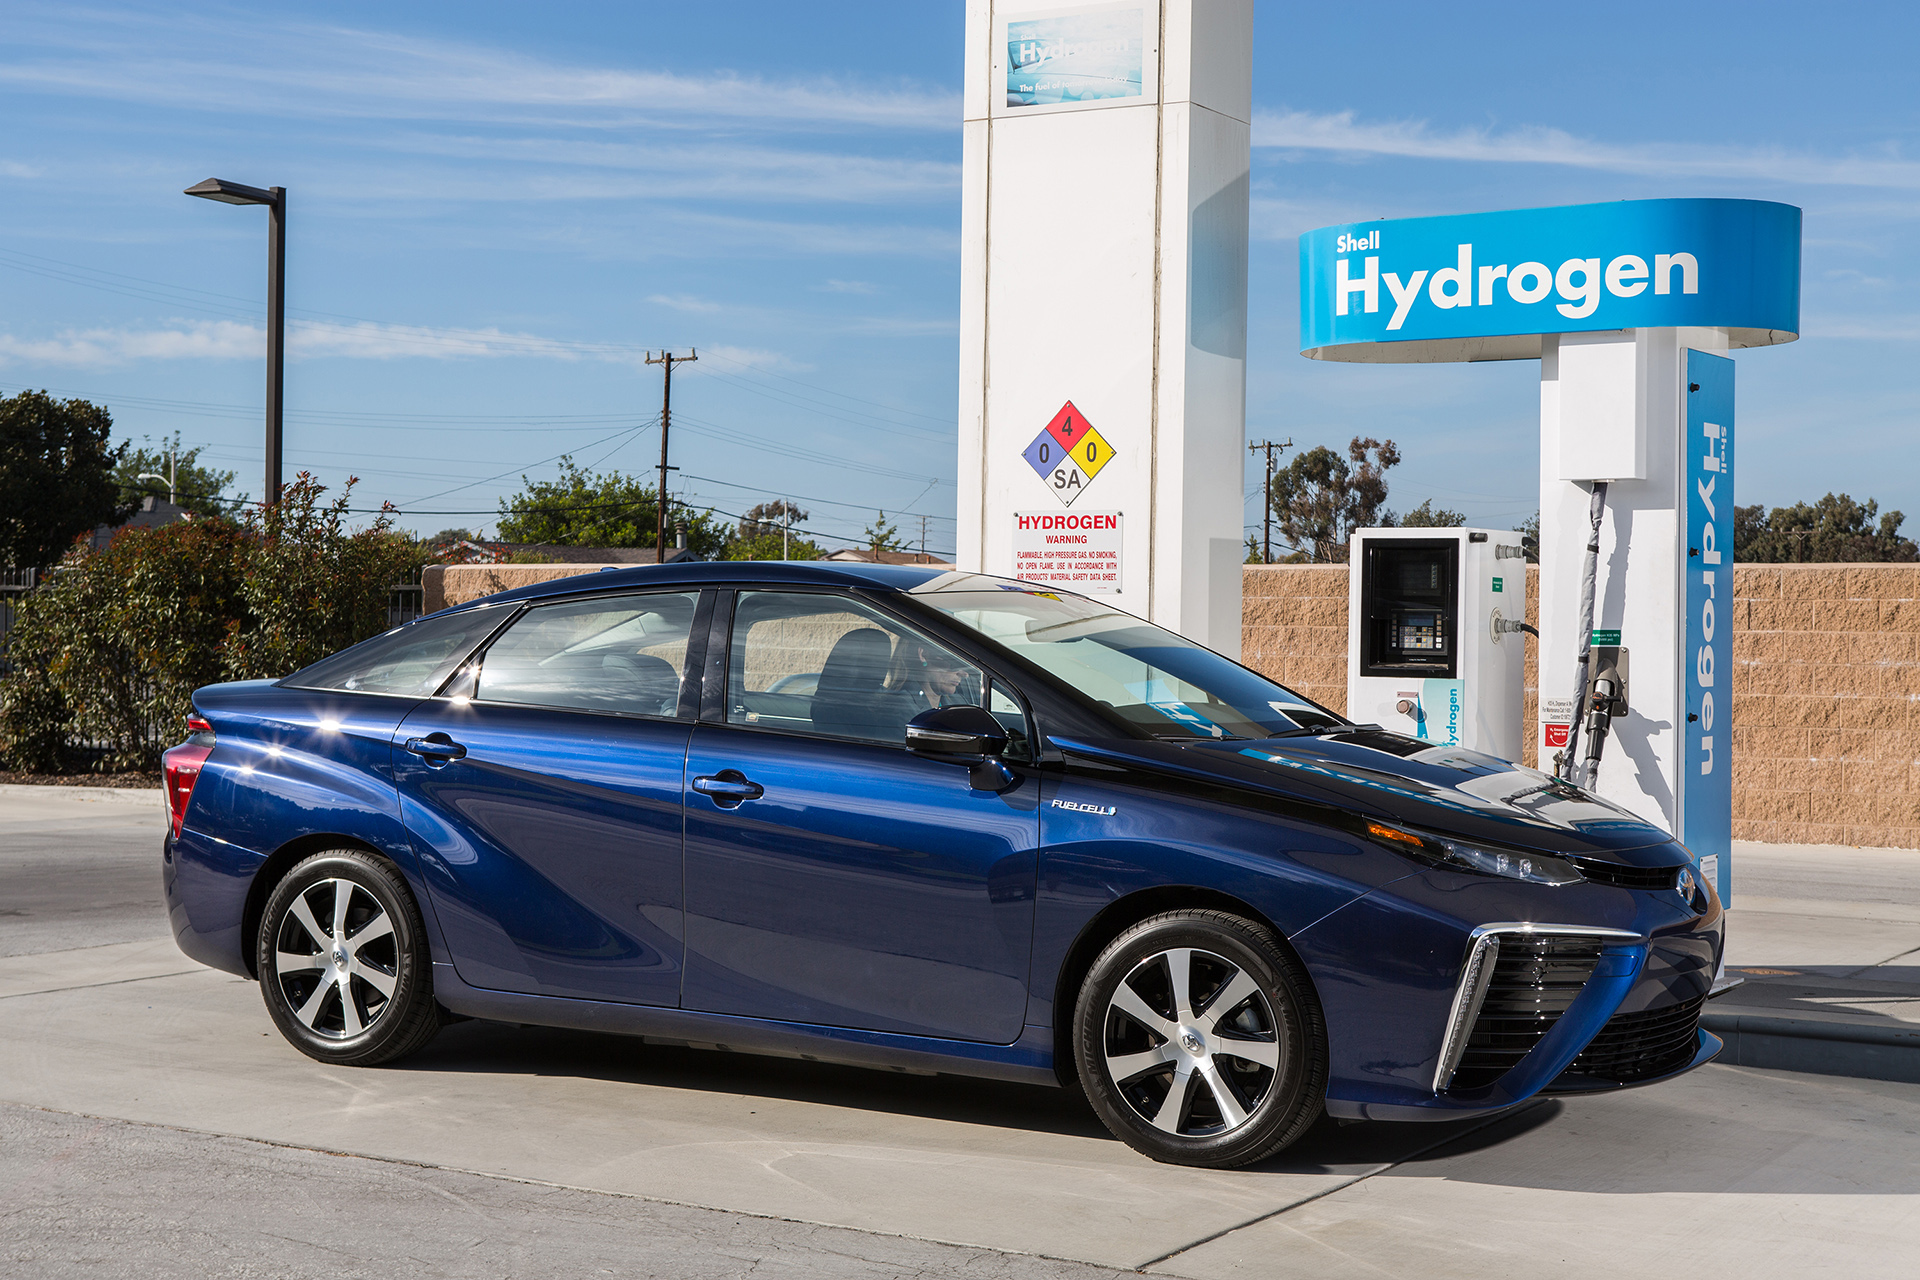 Toyota Mirai Fuel Cell Electric Vehicle